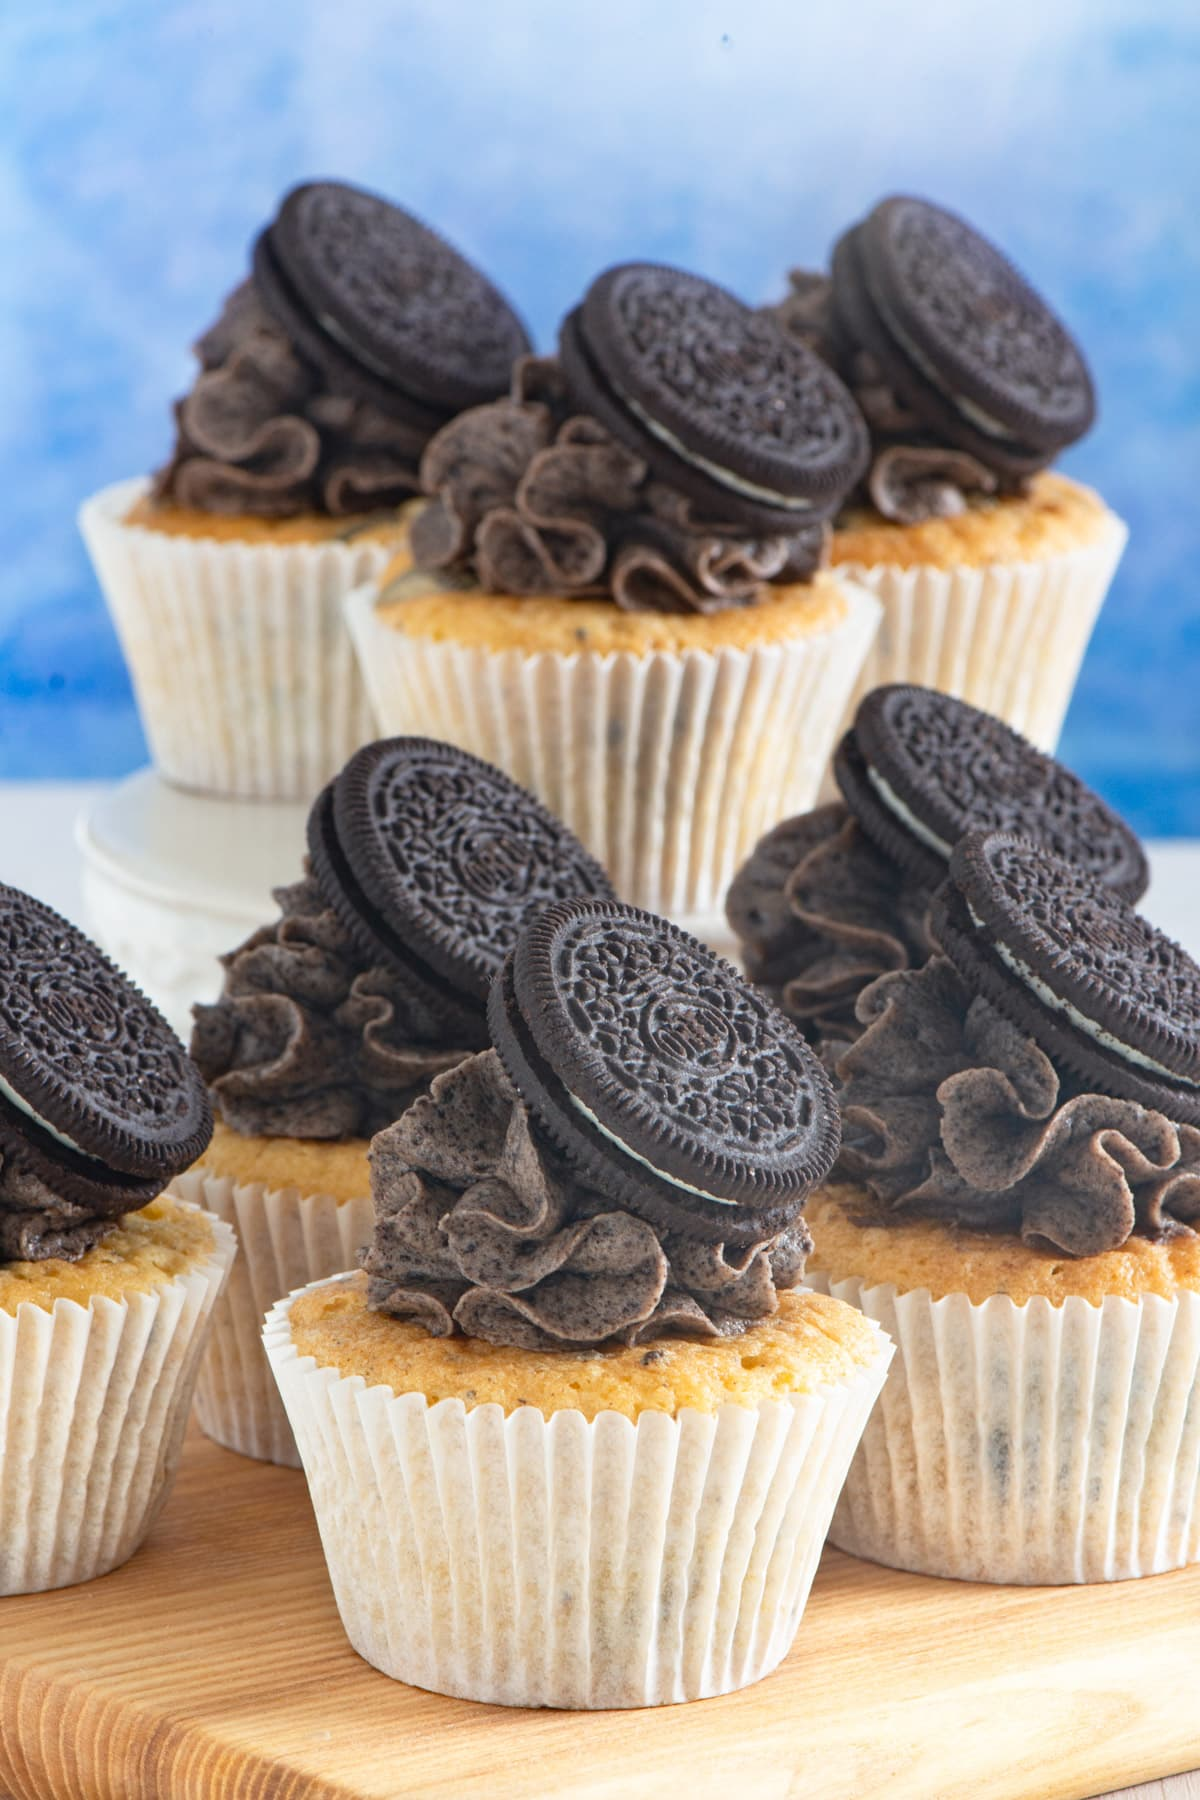 Decorated oreo cupcakes on a board and on a cake stand behind.